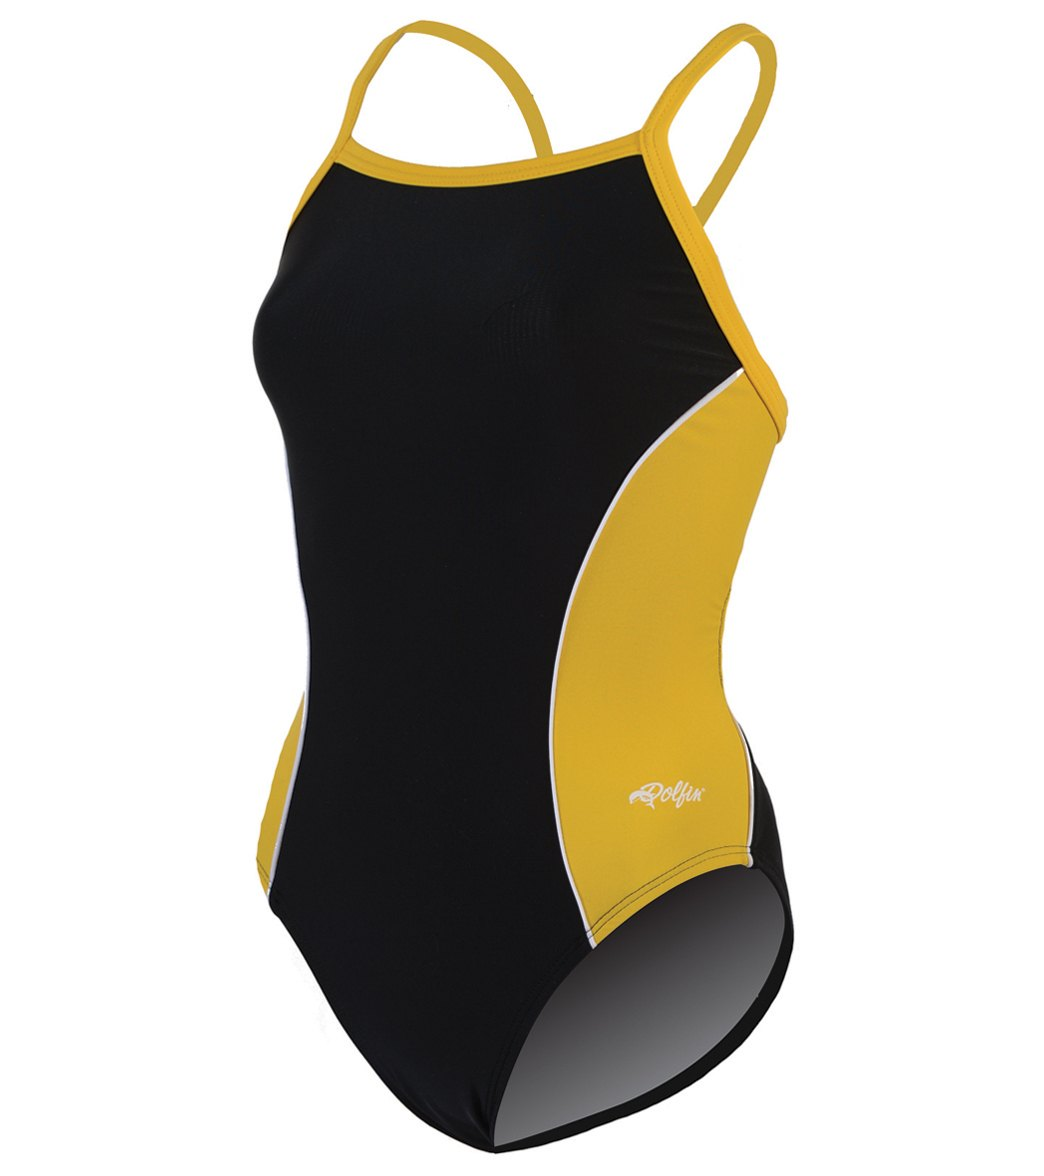 1786d93e21f Dolfin Team Color Color Block Female V-2 Back One Piece Swimsuit at  SwimOutlet.com - Free Shipping